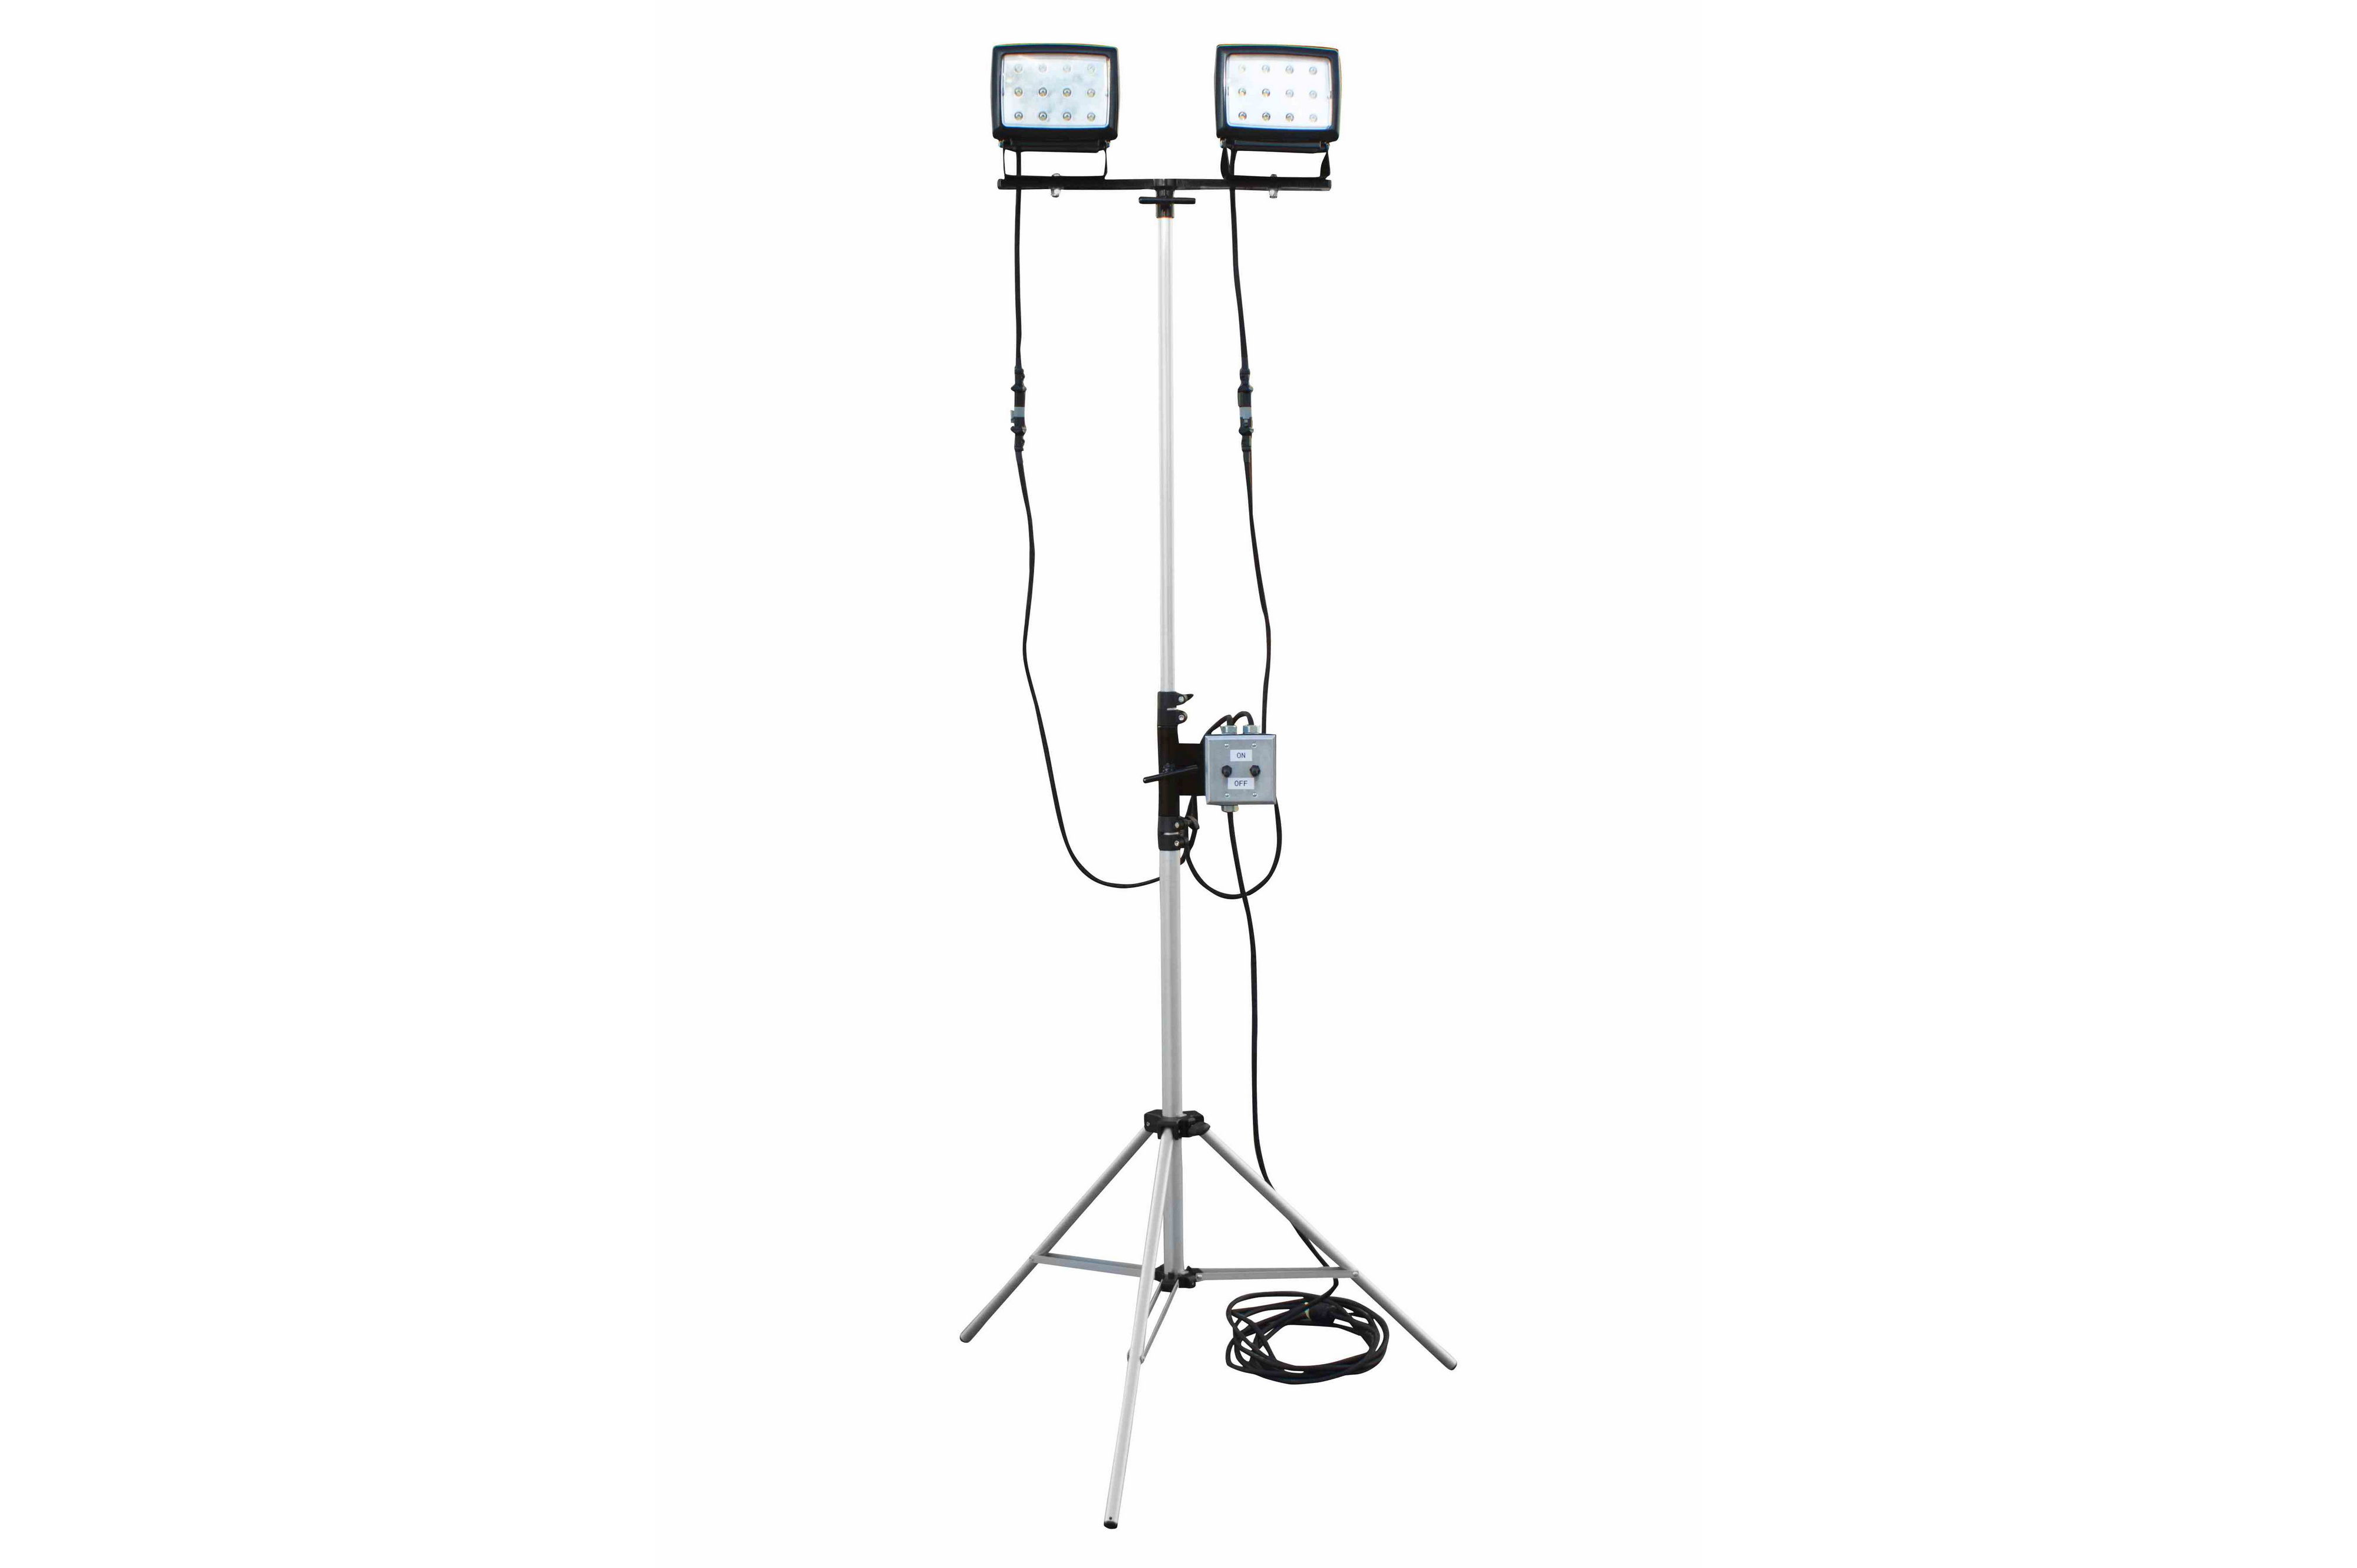 2 40 Watt Led Flood Lights On Telescoping Tripod